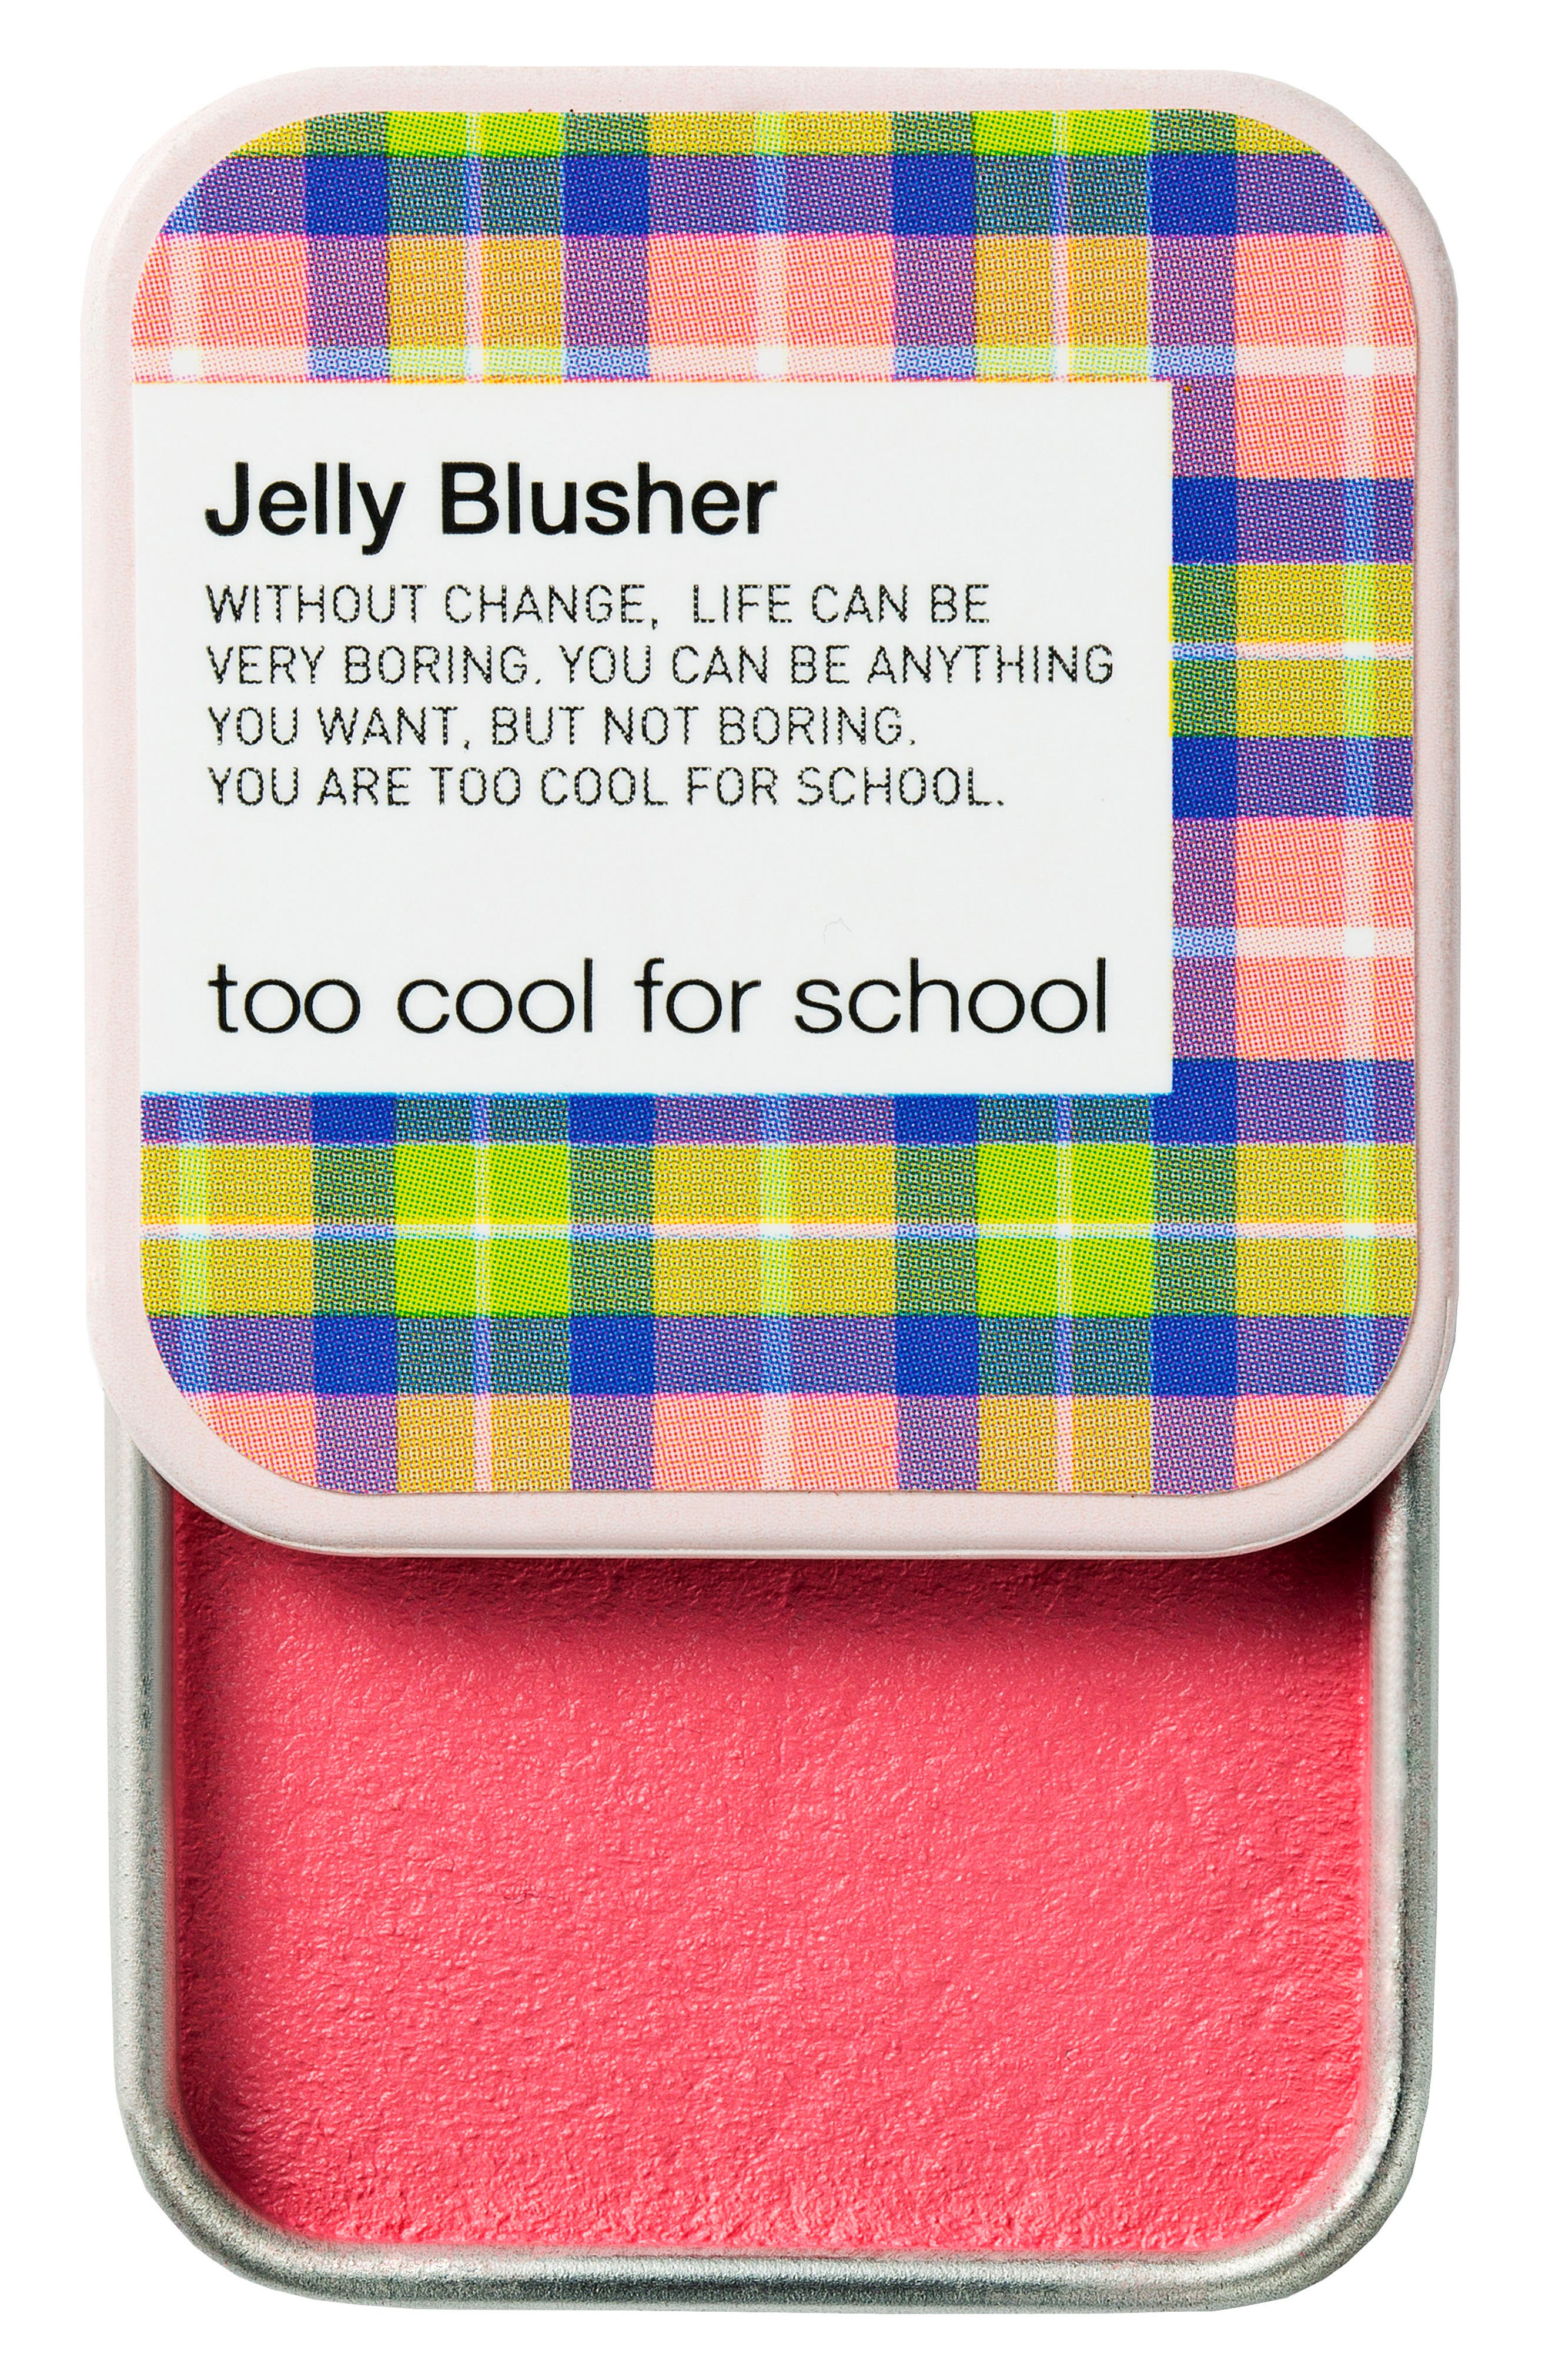 Jelly Blusher & Solid Perfume Trio,                             Alternate thumbnail 2, color,                             None